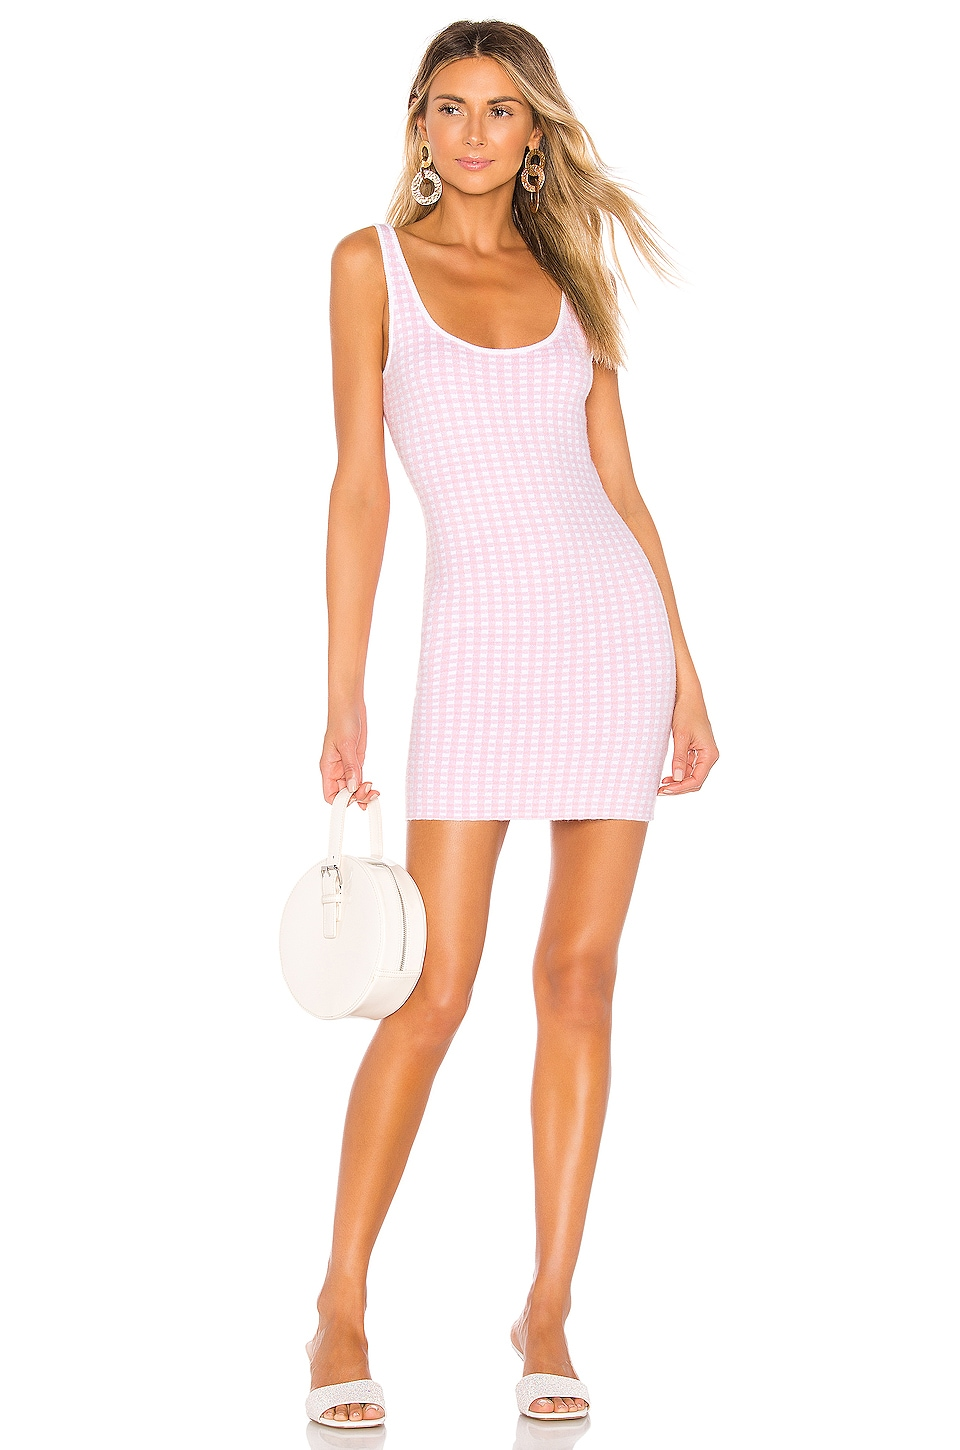 MAJORELLE Willa Dress in Pink Gingham